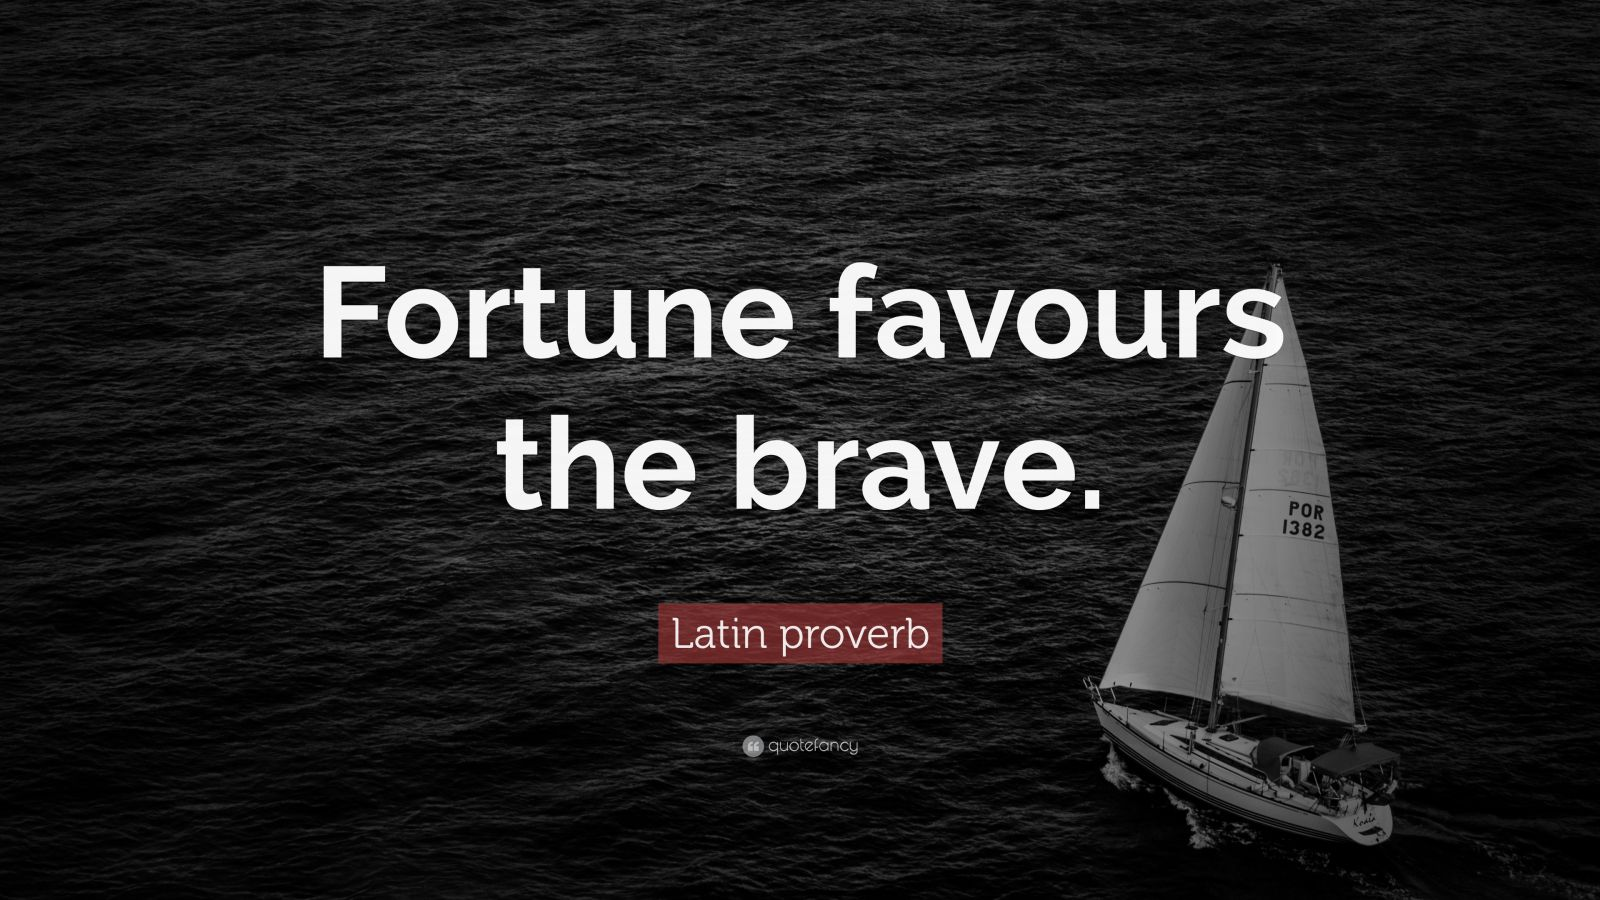 Kisses Wallpapers With Quotes Latin Proverb Quote Fortune Favours The Brave 10